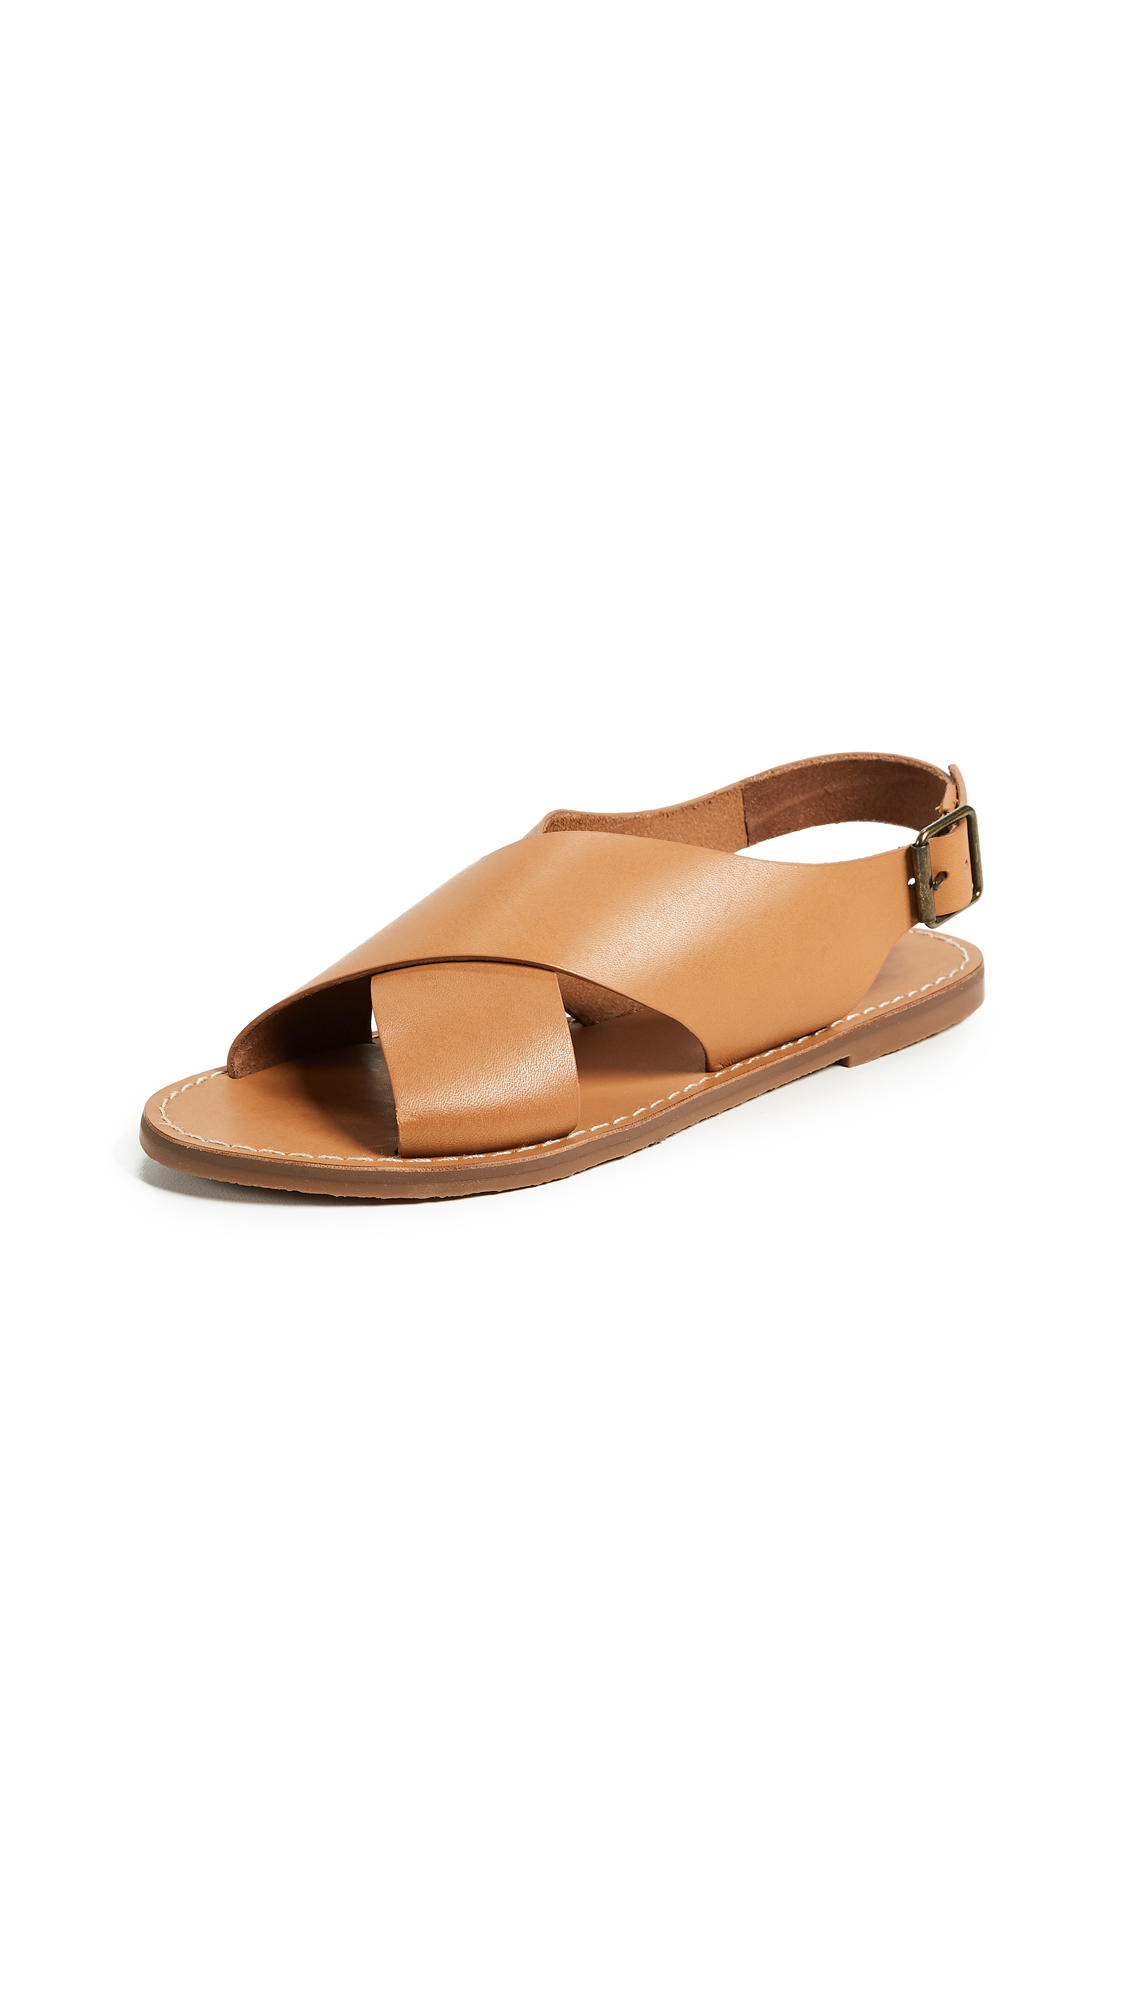 Madewell Reka Crisscross Outstock Sandals